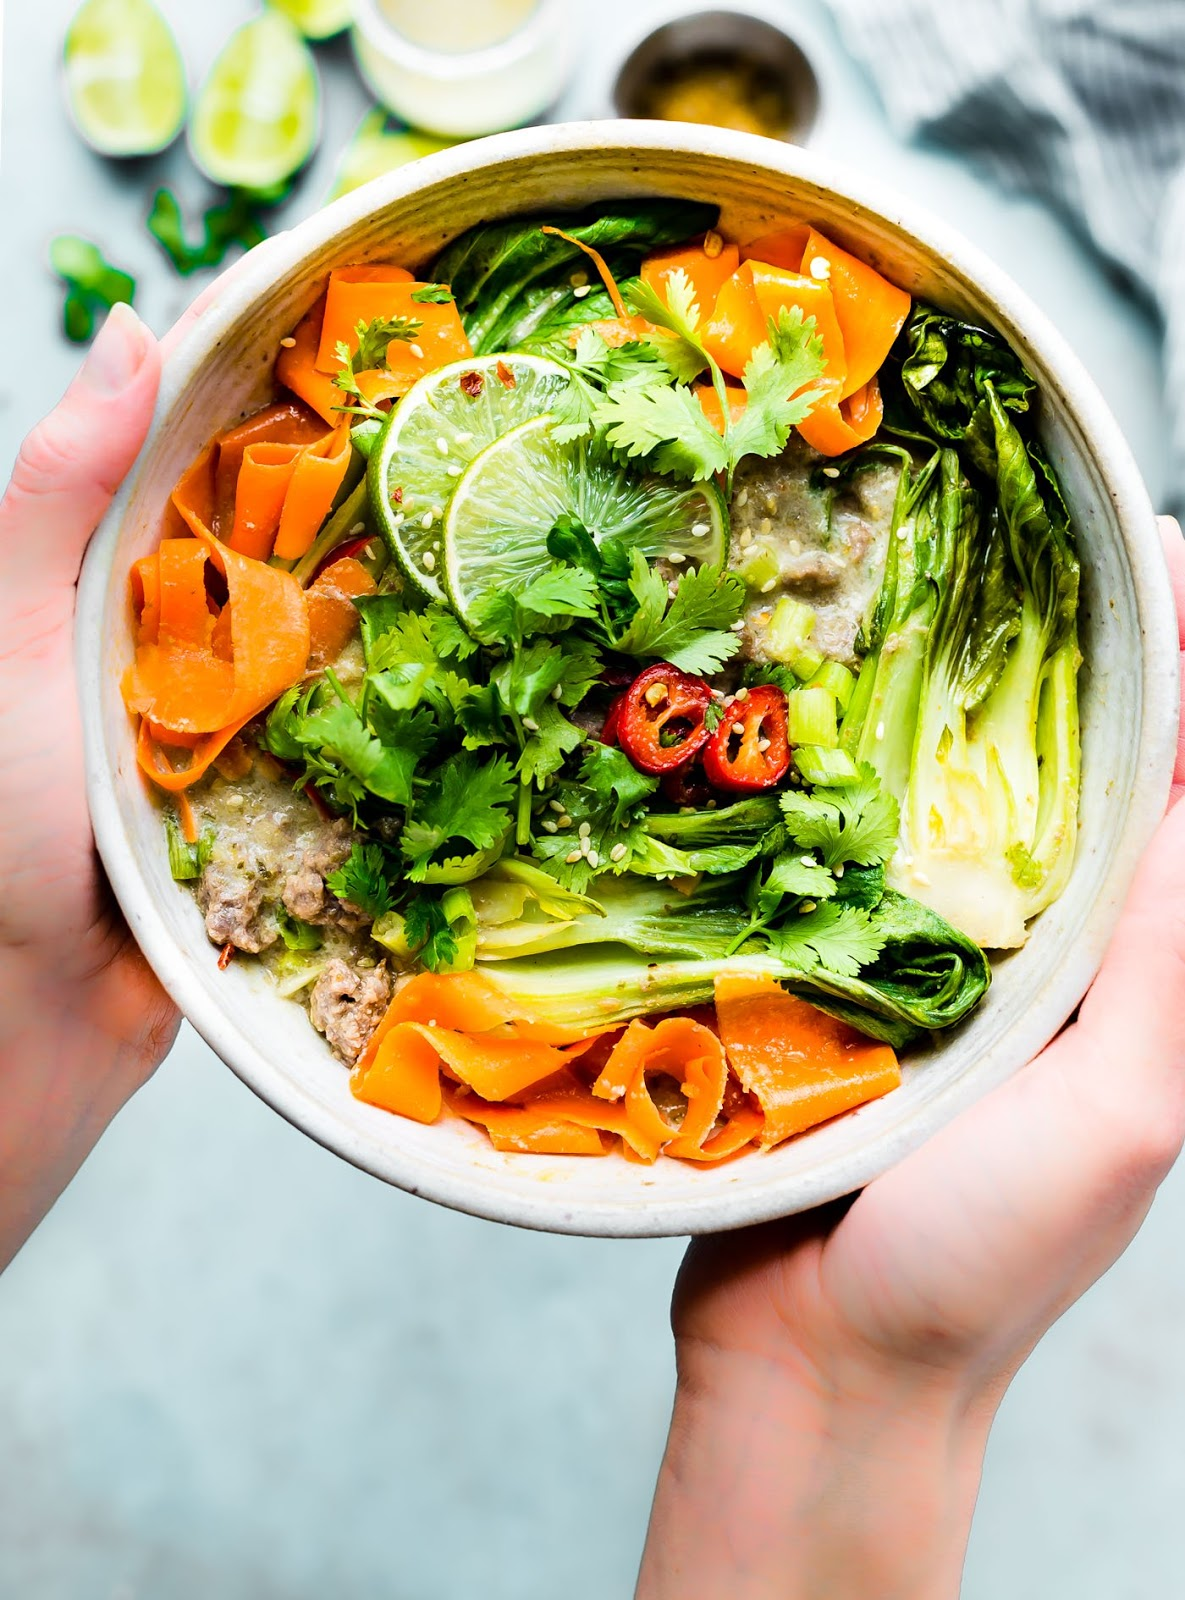 Beef Curry Bowls Thisbowl recipe is for both the meat eater and vegetarian palate! A one potgreen curry beefrecipe that's quick to make and flavorful!